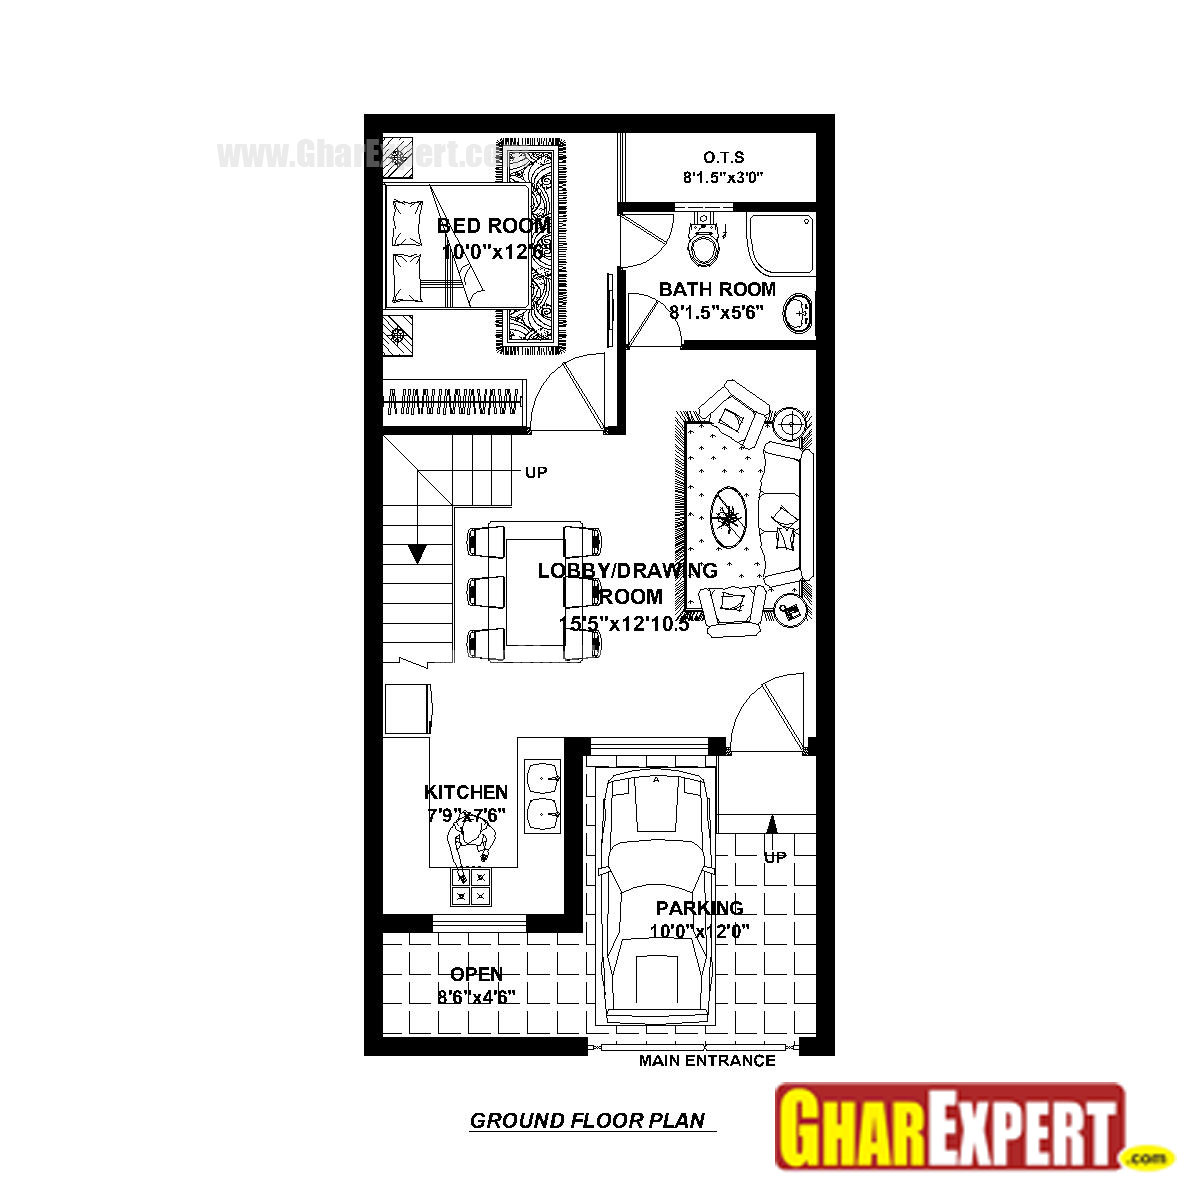 House plan for 20 feet by 40 feet plot plot size 89 20 by 20 house plan